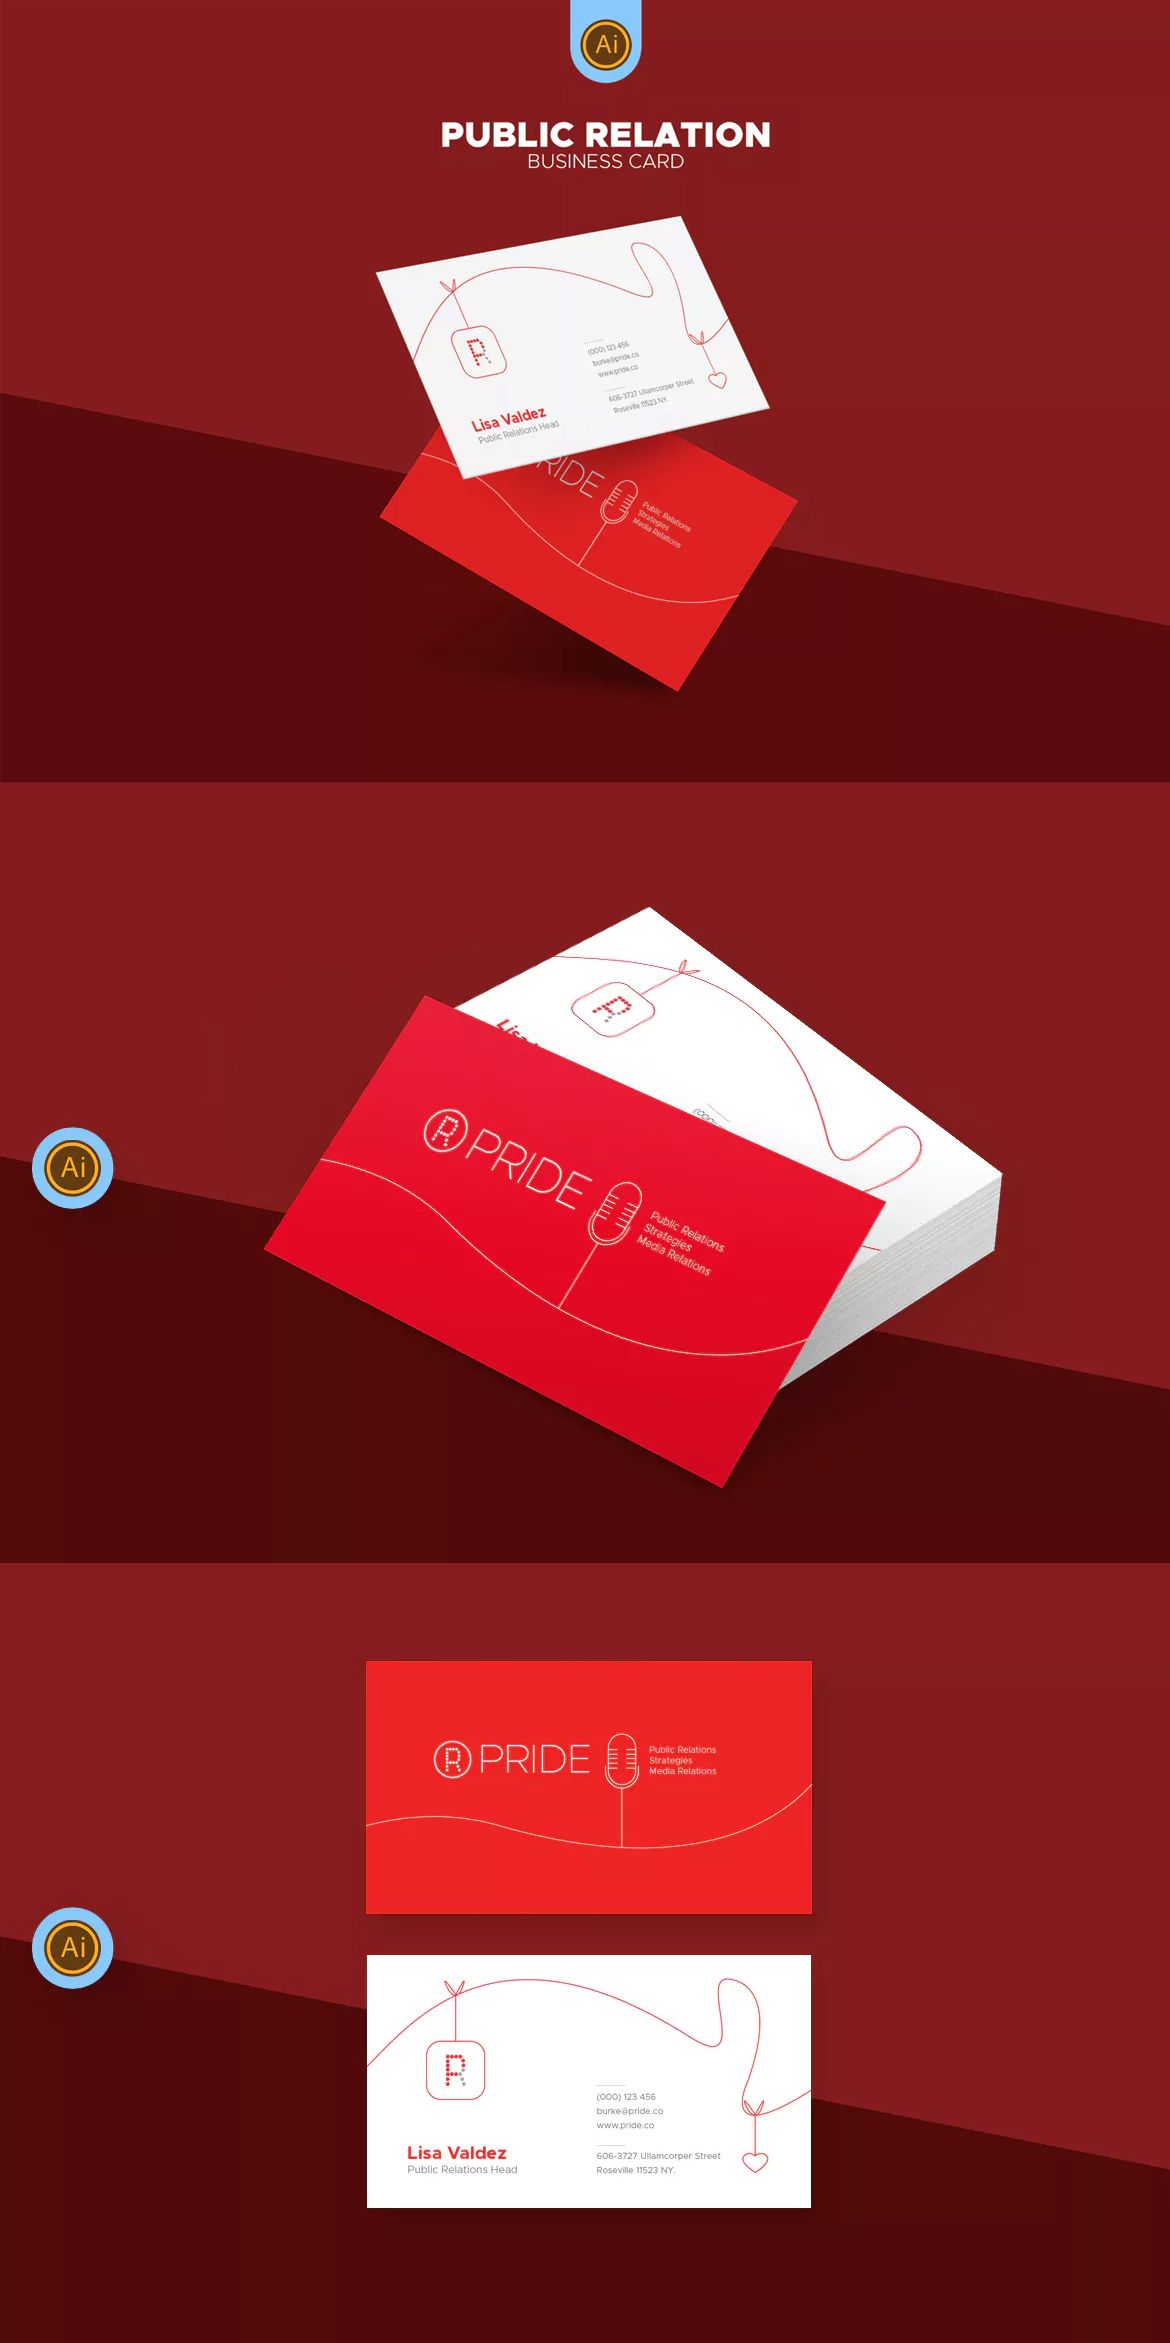 Public Relations Business Card Template AI, EPS #unlimiteddownloads ...